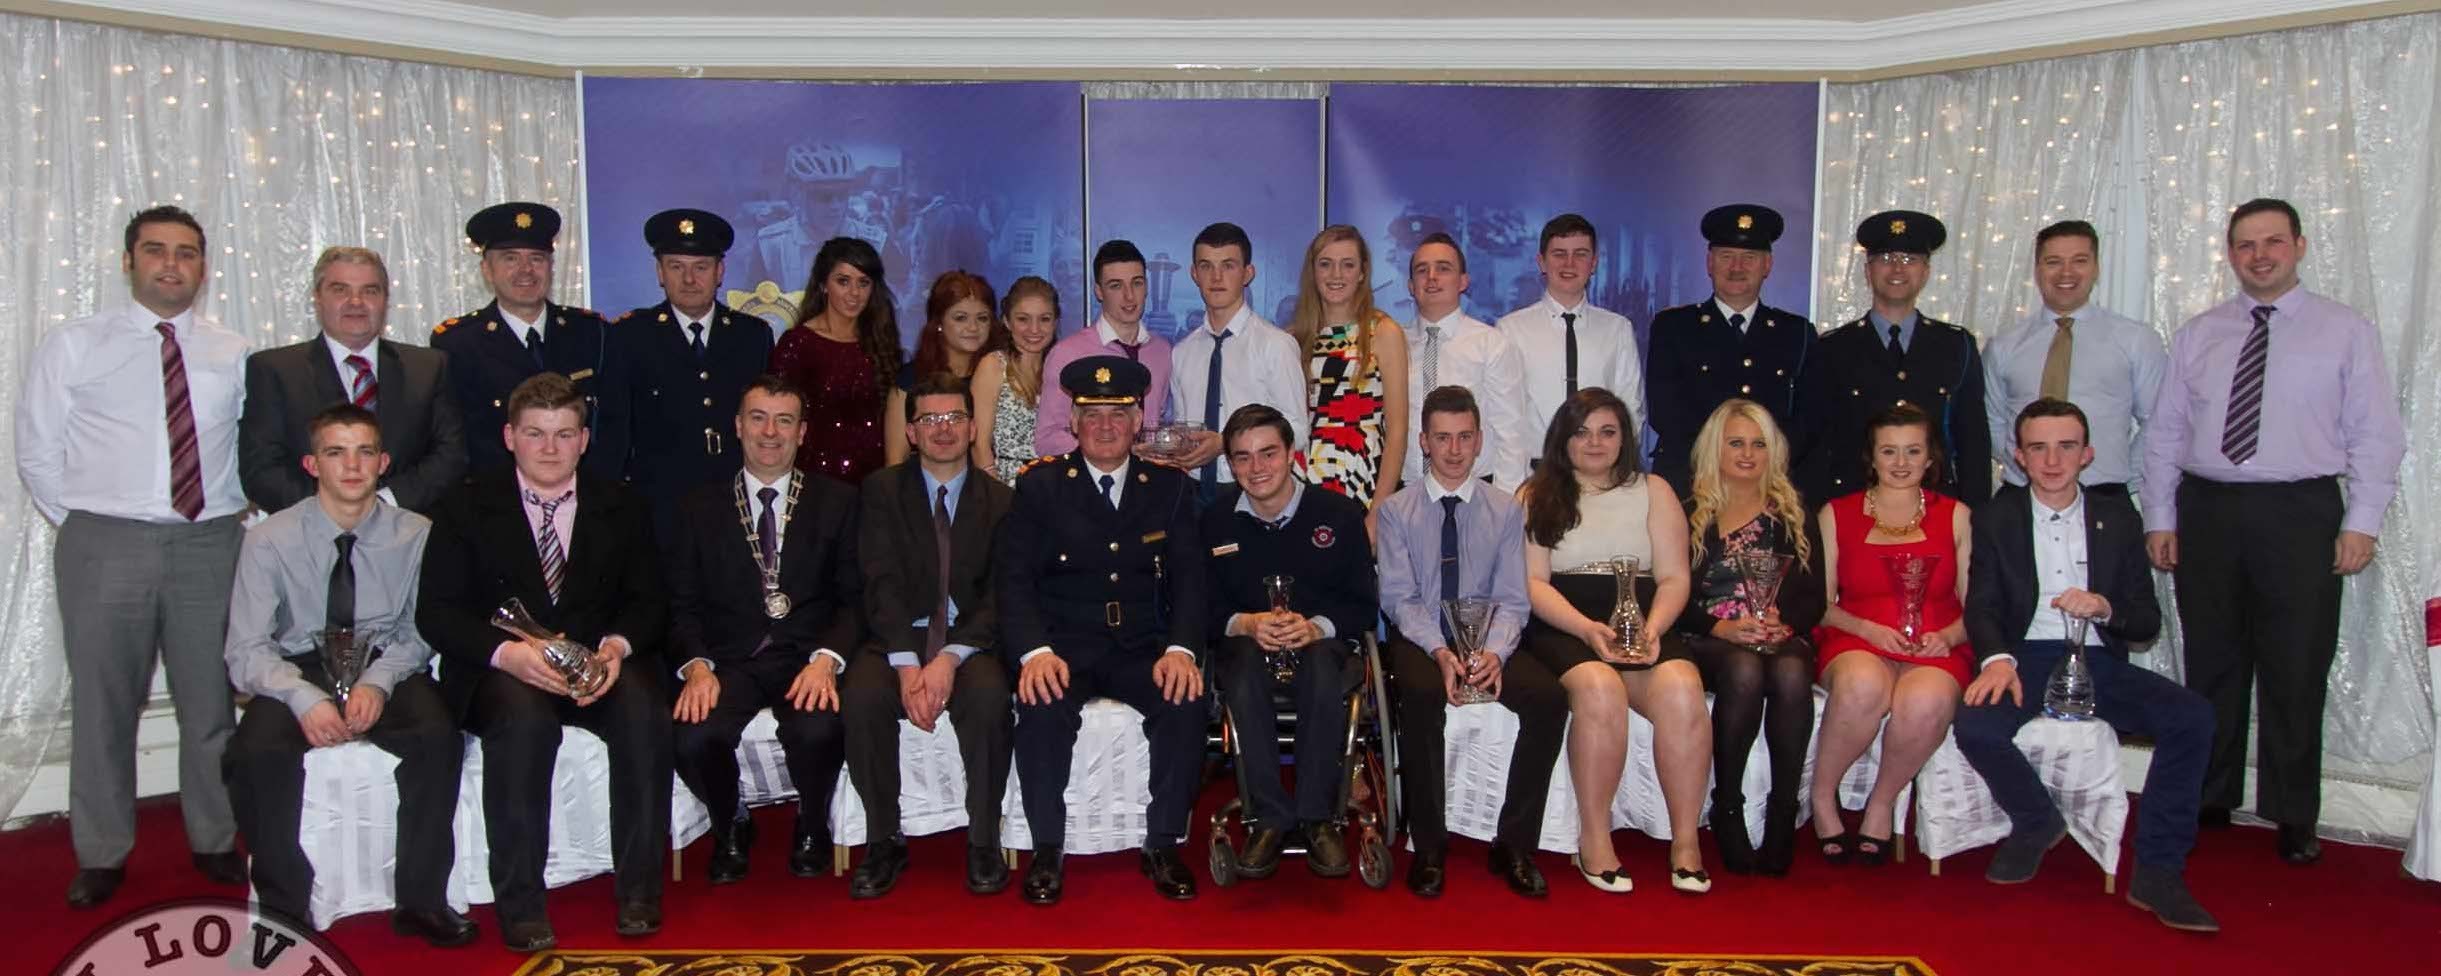 limerick garda youth awards 2014